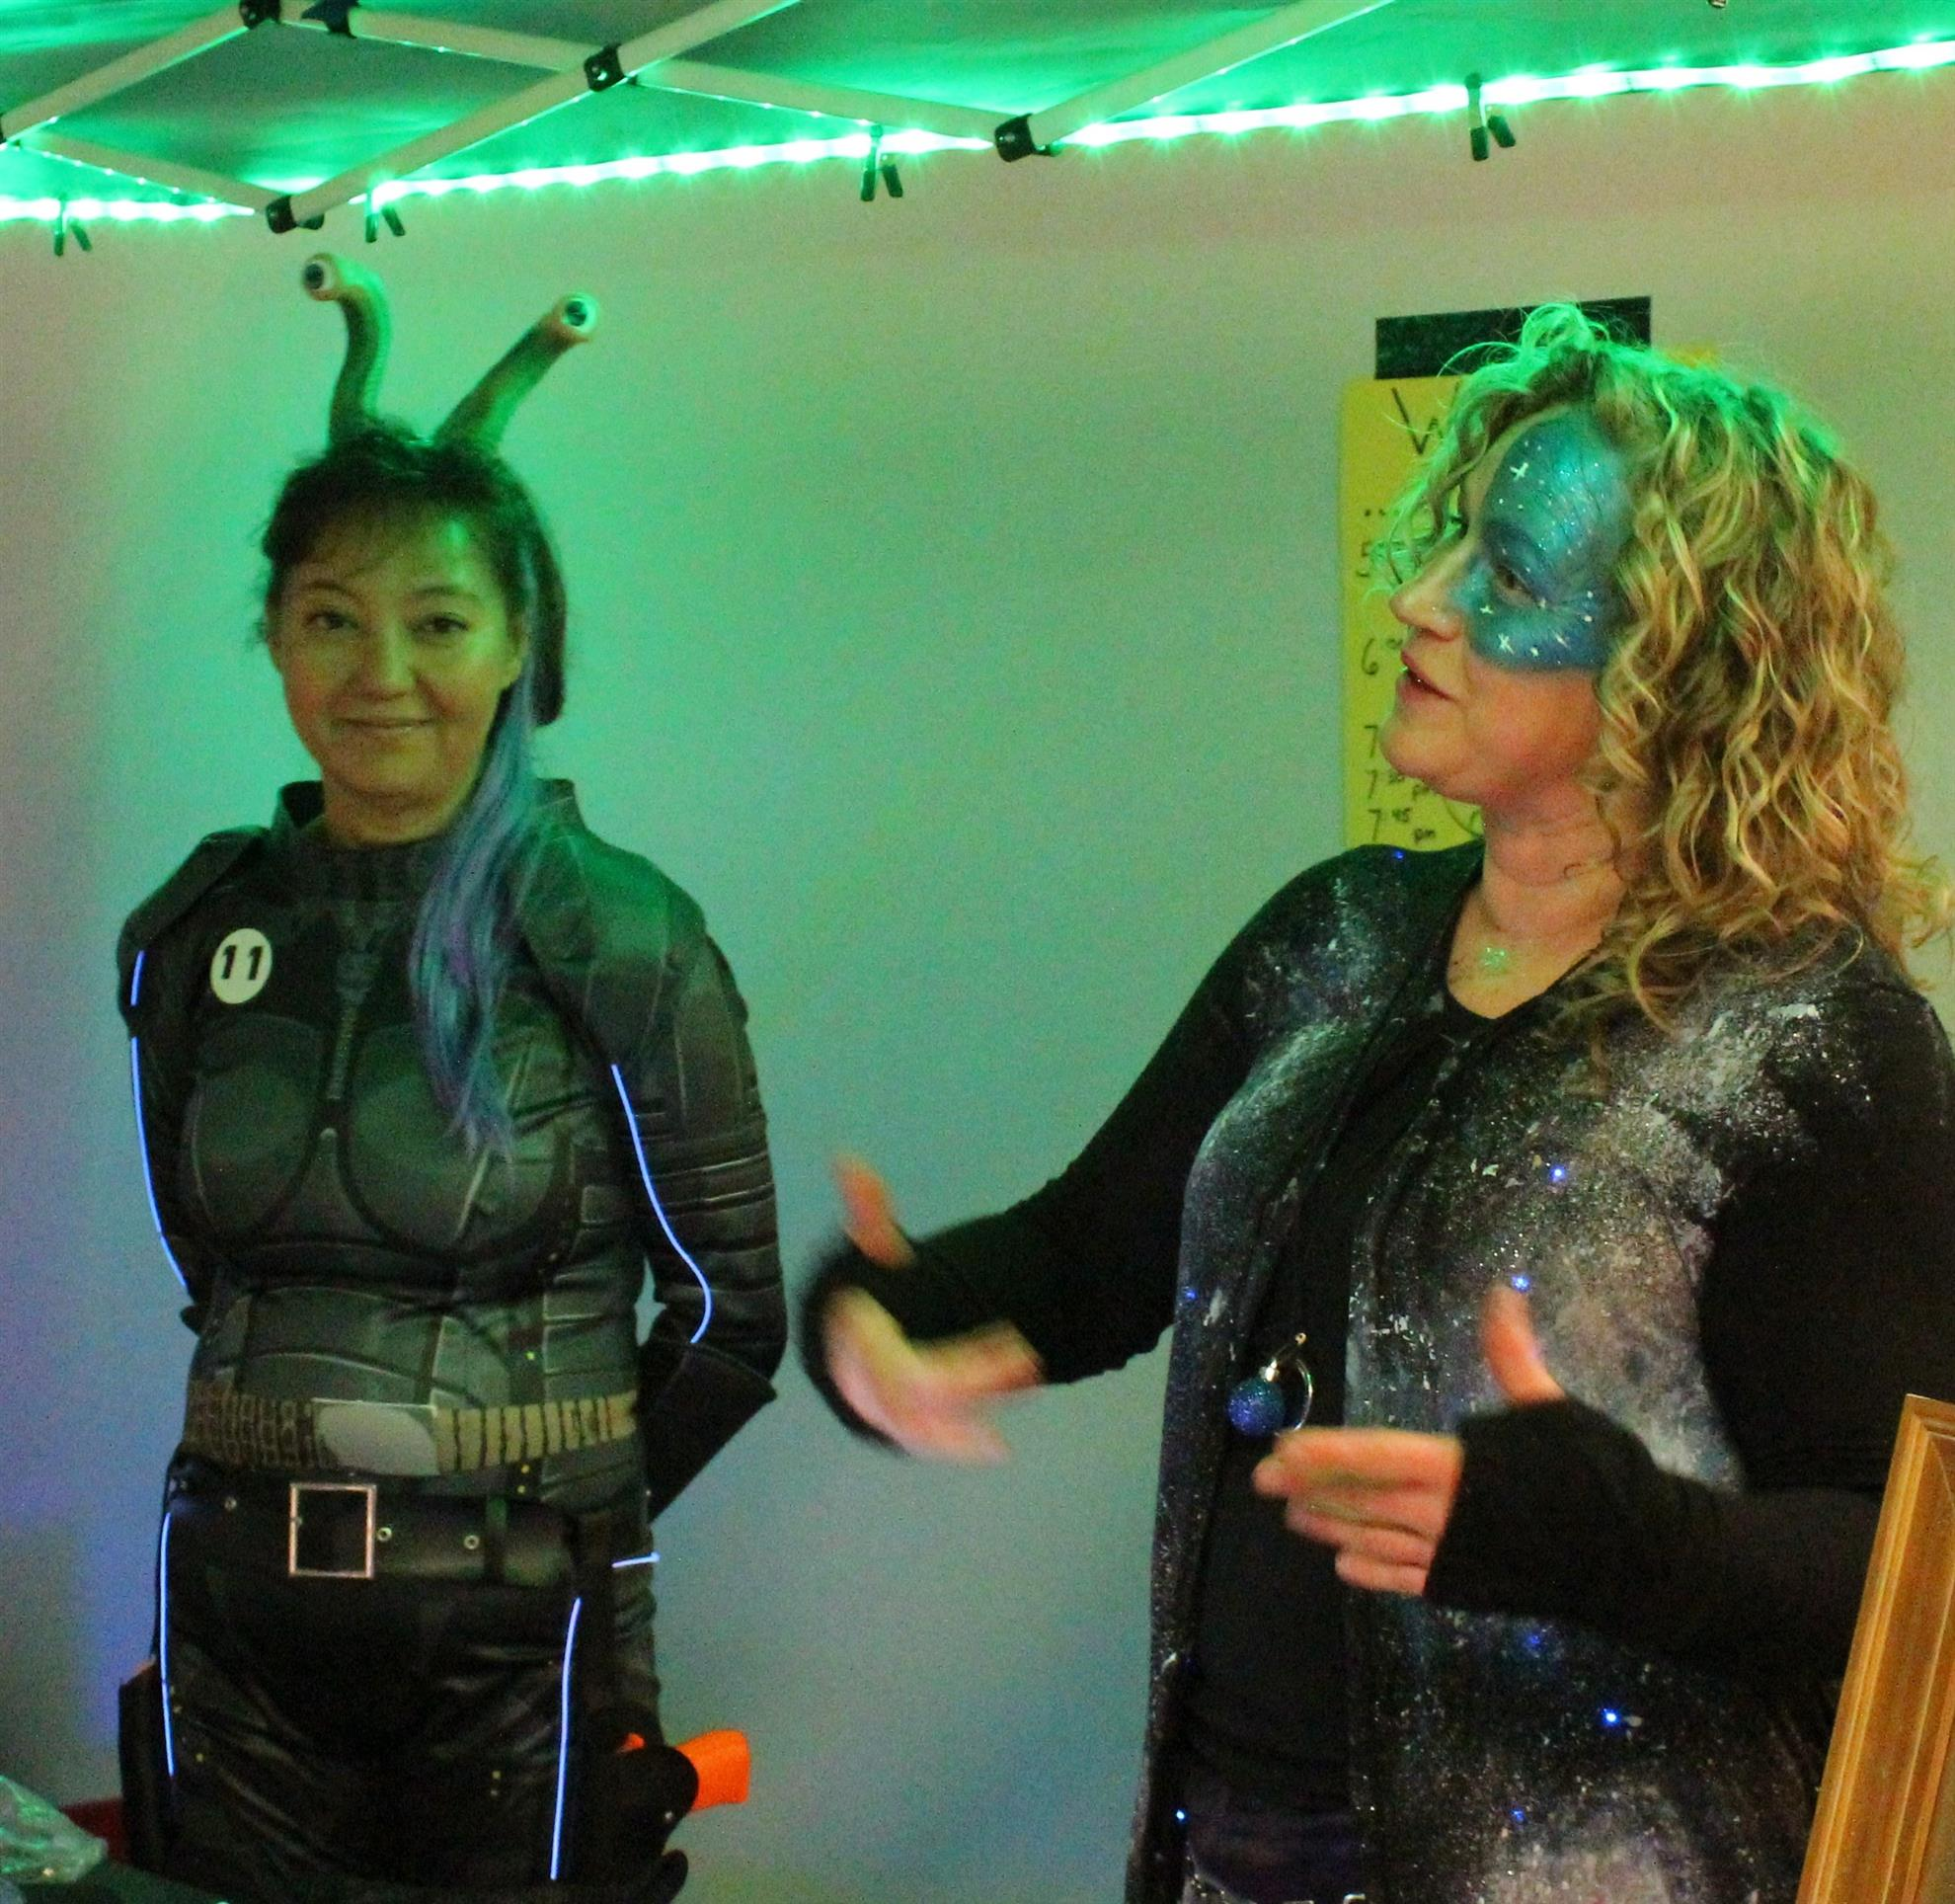 Susan Lisak and Rocky Moss checking in guests at the Sci-Fi Soiree